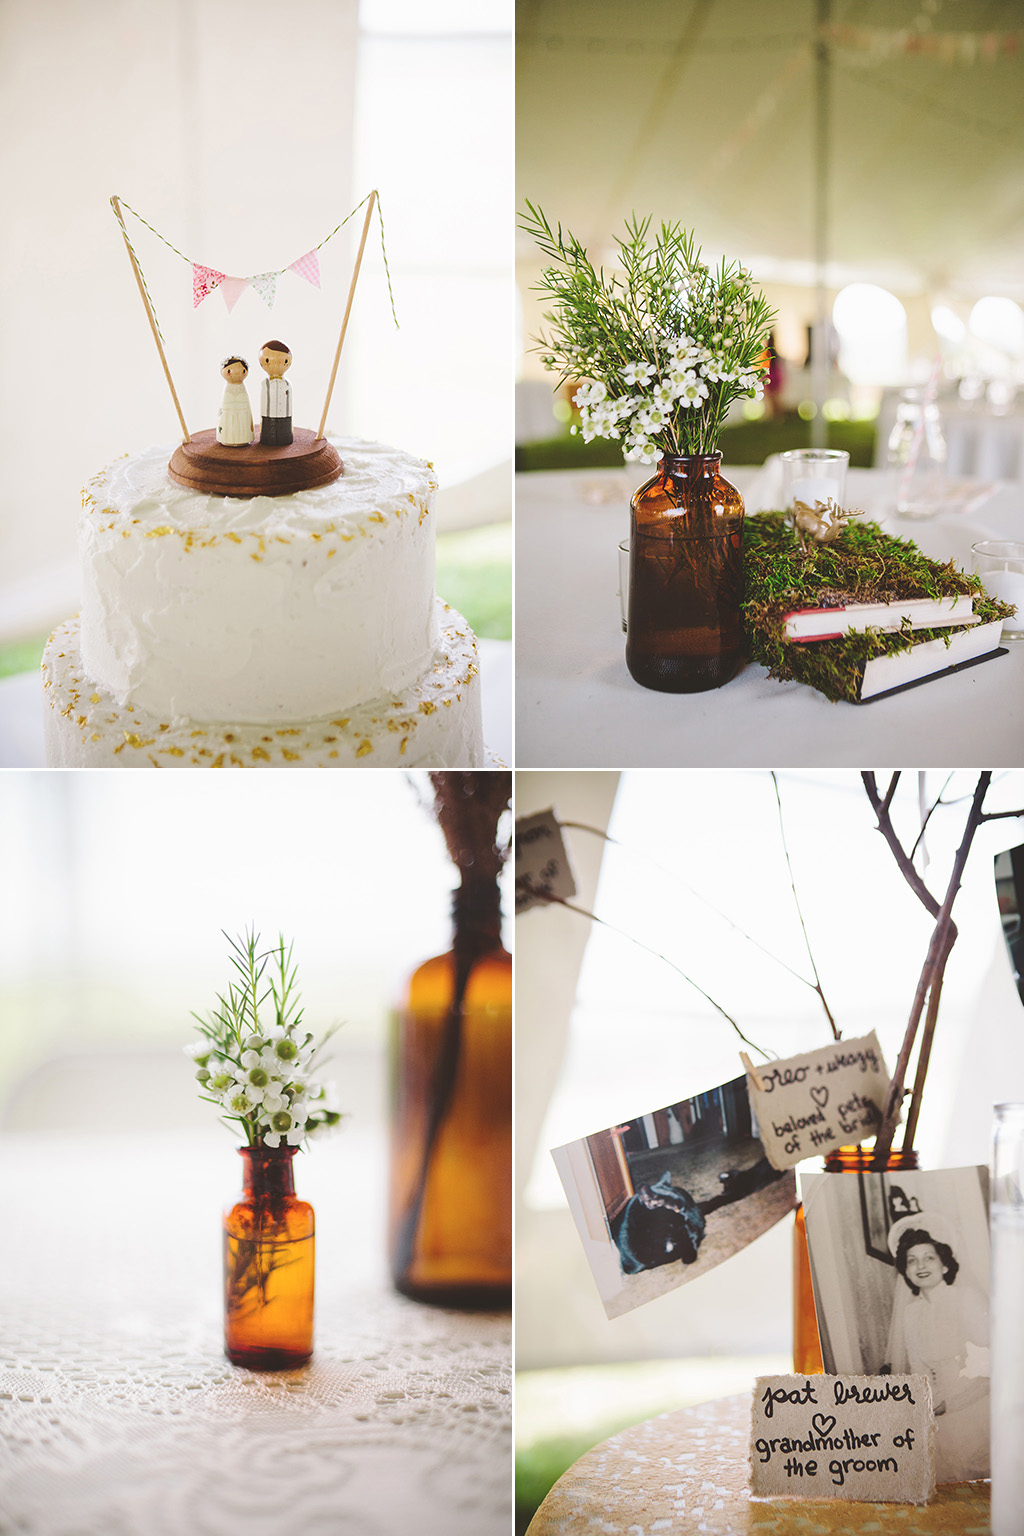 DIY wedding in maine homemade cake toppers and vintage photographs